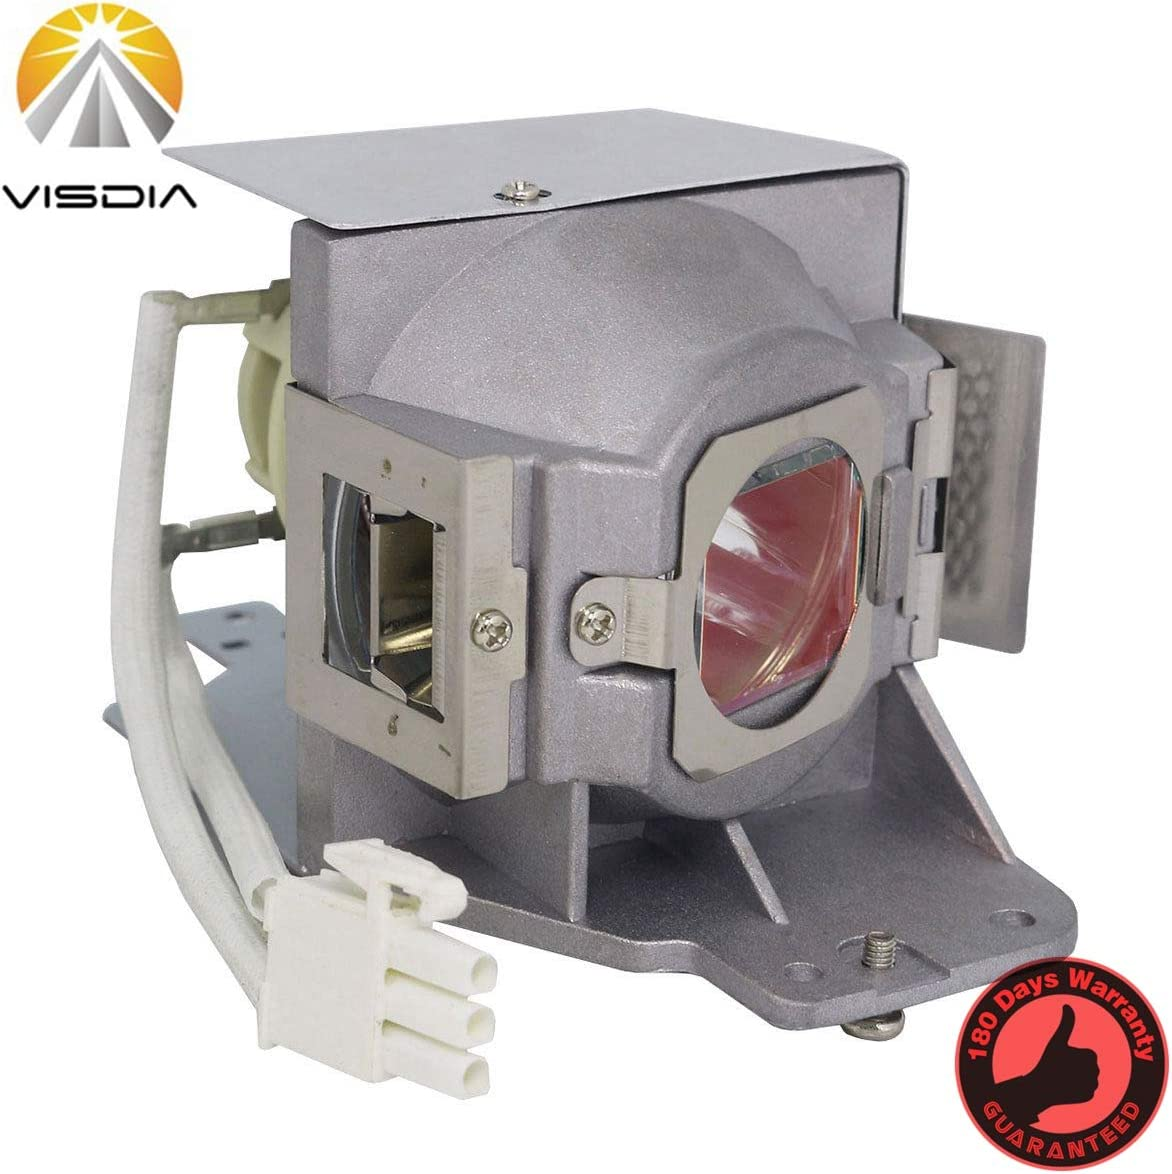 RLC-079 Replacement Projector Lamp with Housing for VIEWSONIC PJD7820HD PJD7822HDL VS14937 Projectors by Visdia